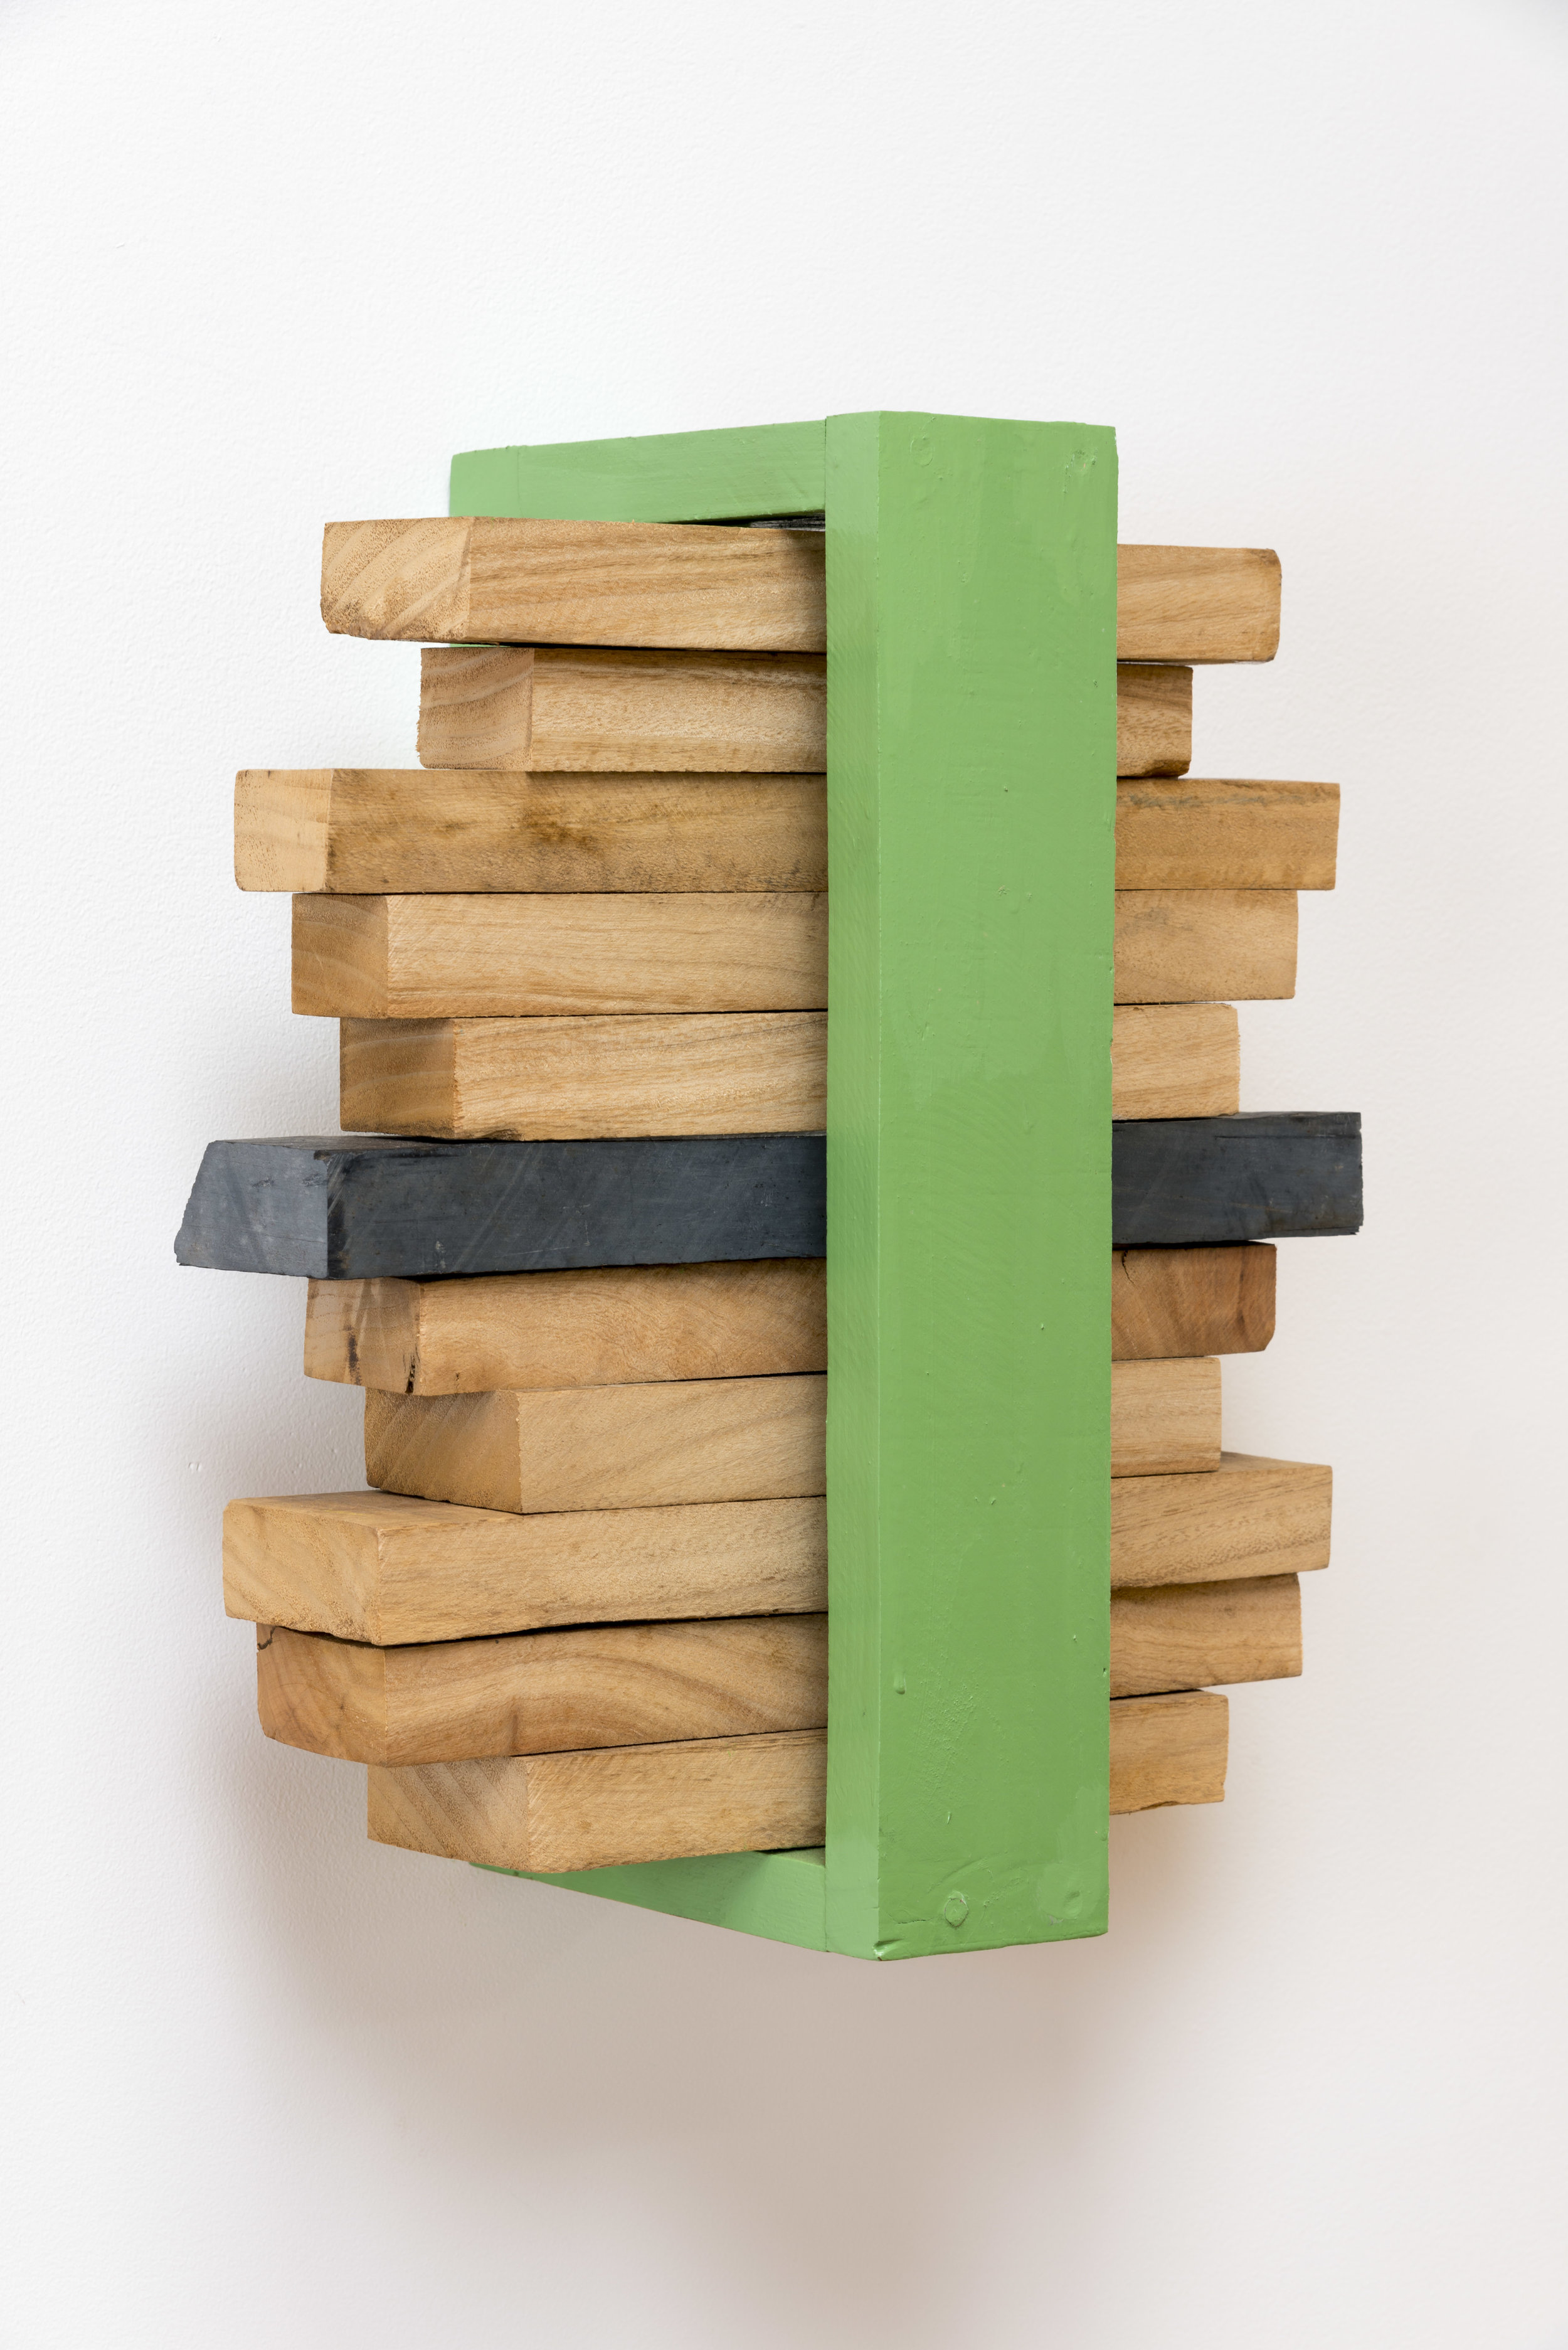 Stack of Space , 2001-2002 界積性 ( Kaisekisei ) Wood, water-based paint 13 3/4 x 11 13/16 x 6 5/8 inches 35 x 30 x 17 cm